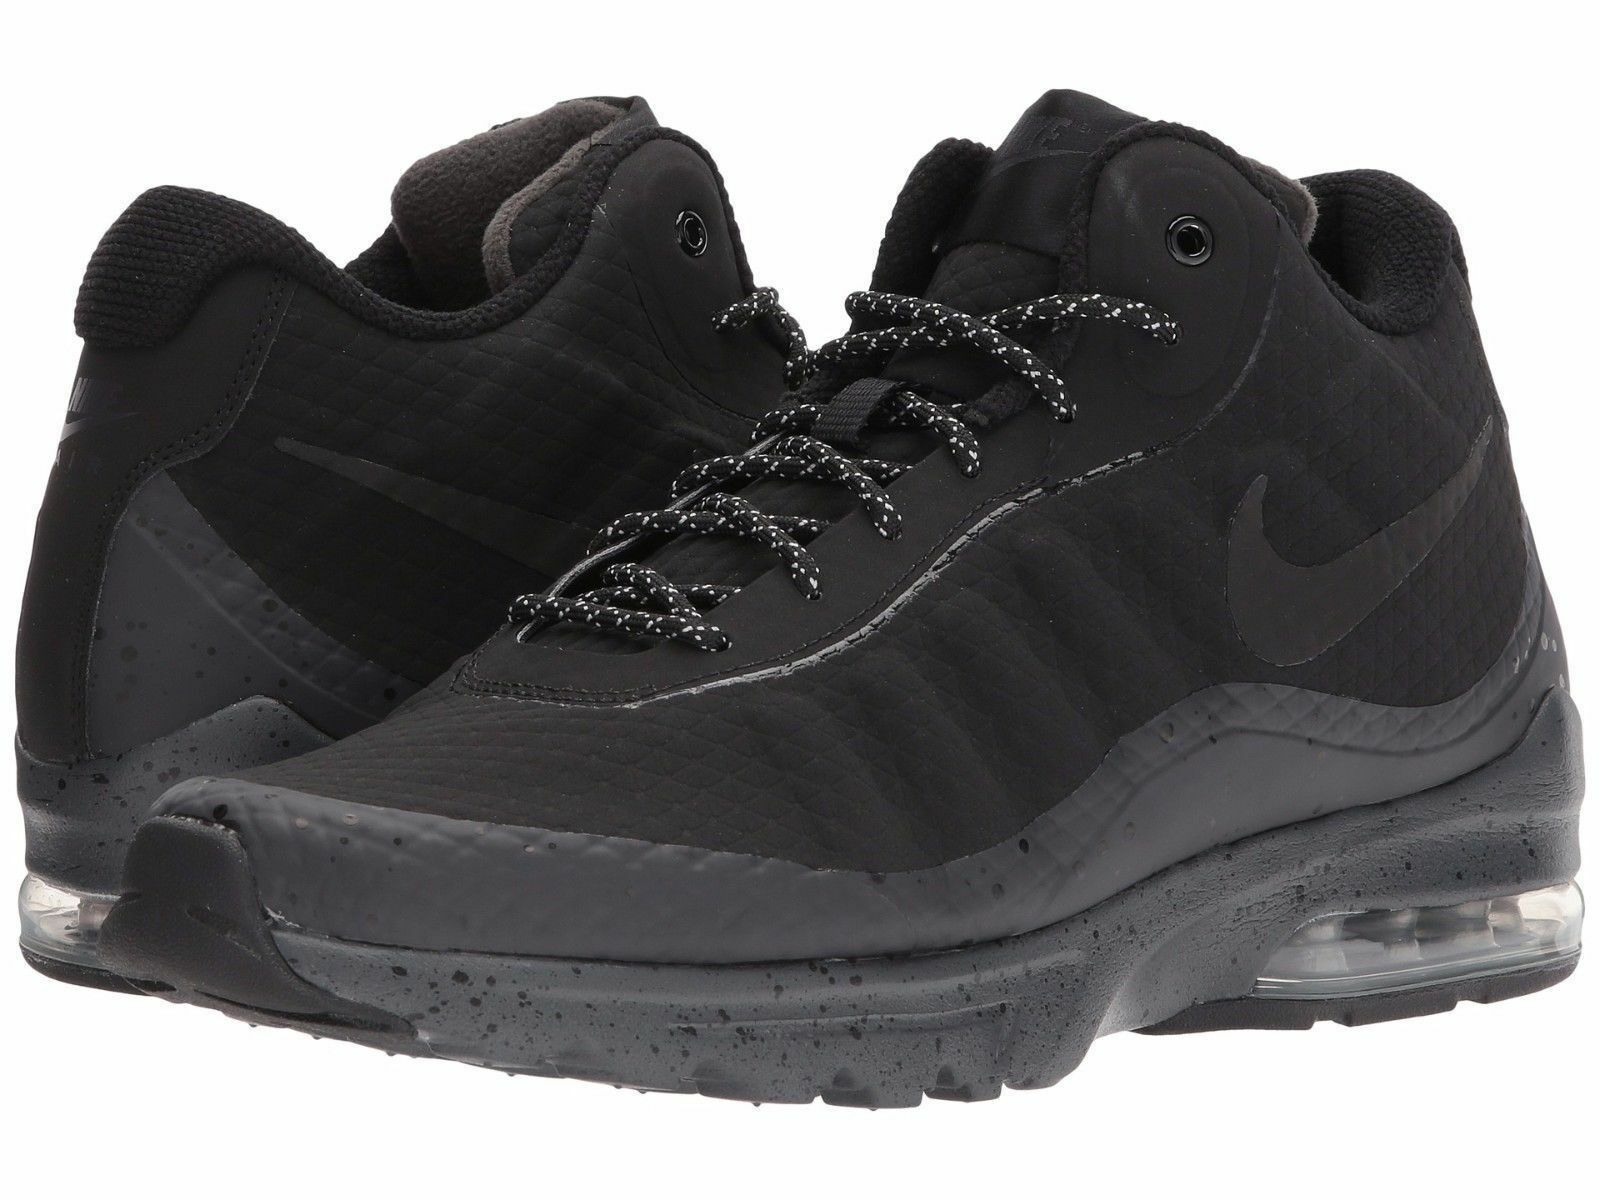 NIKE AIR MAX INVIGOR MID RUNNING MEN SHOES BLACK 858654-004 SIZE 9.5 NEW